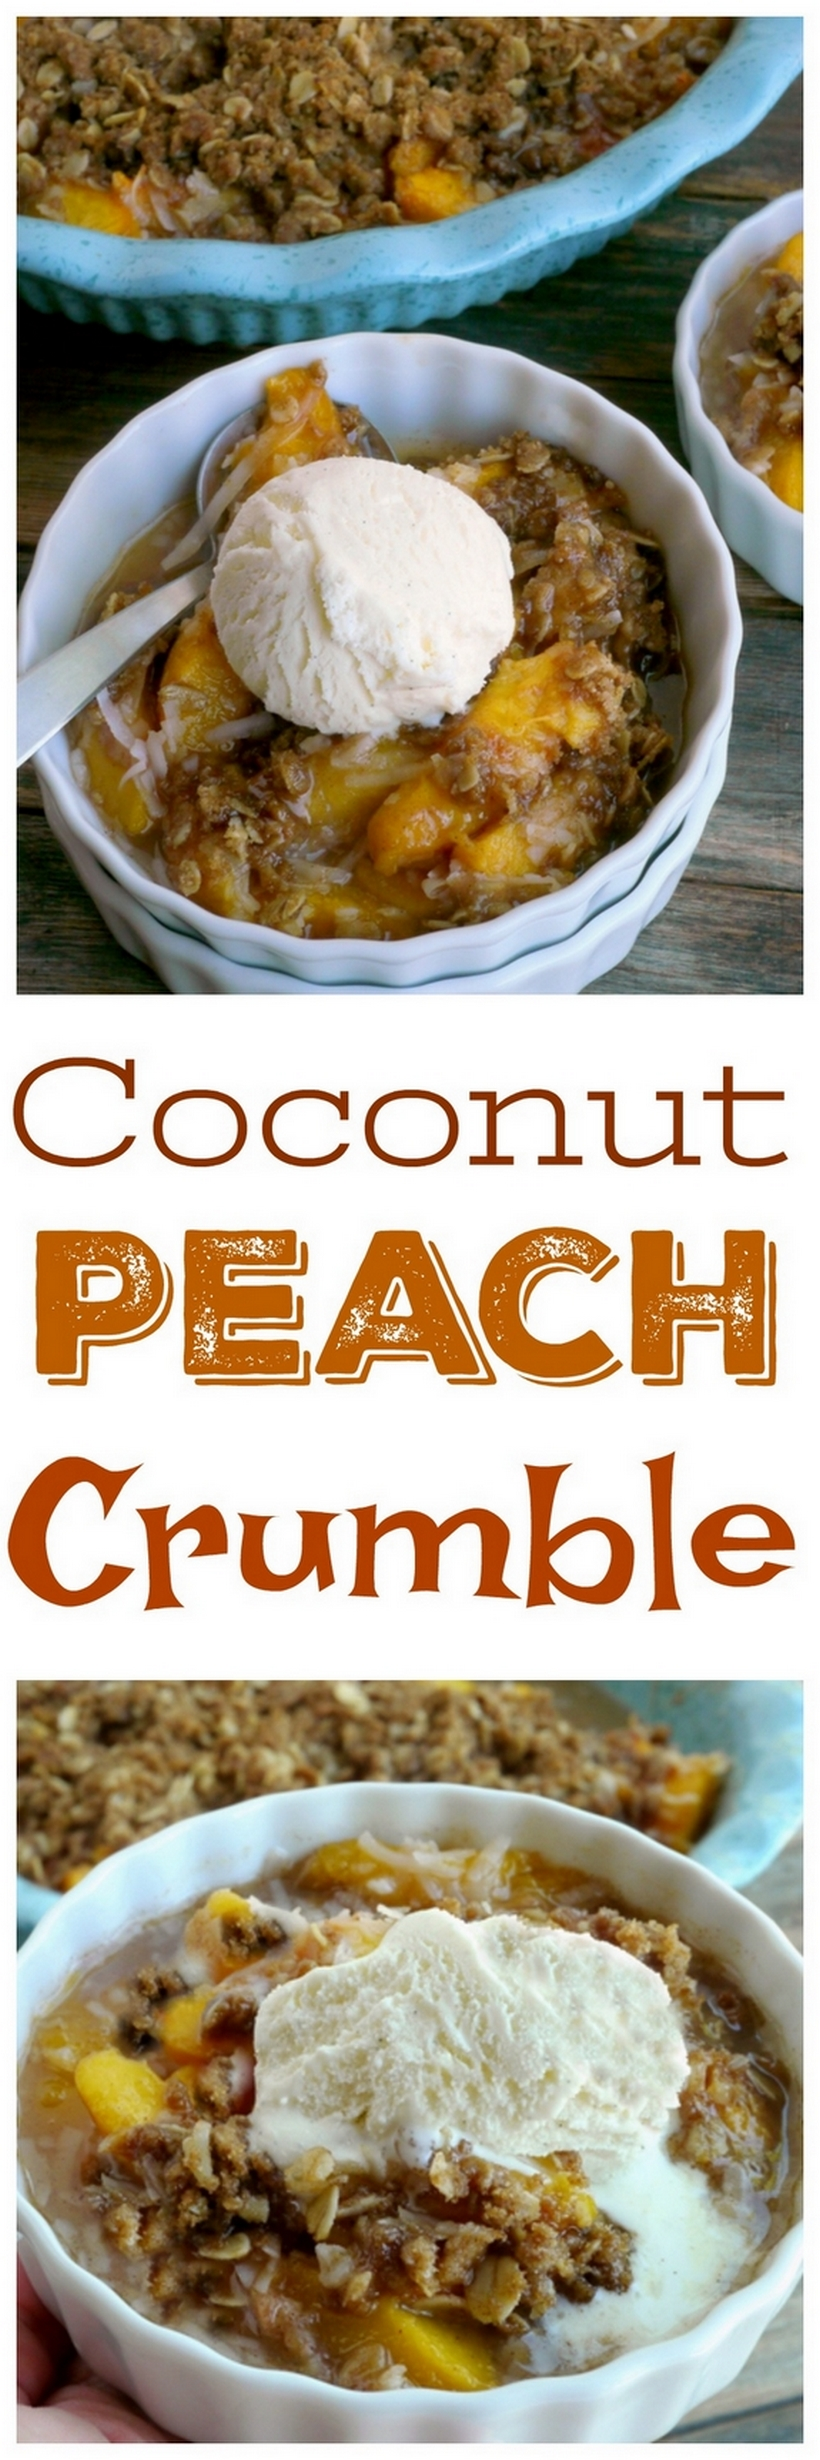 Take advantage of the season's sweetest and ripest fruit with this Coconut Peach Crumble. And don't forget that scoop of vanilla bean ice cream on top from NoblePig.com #noblepig #peach #peachdessert #peaches #coconutdessert